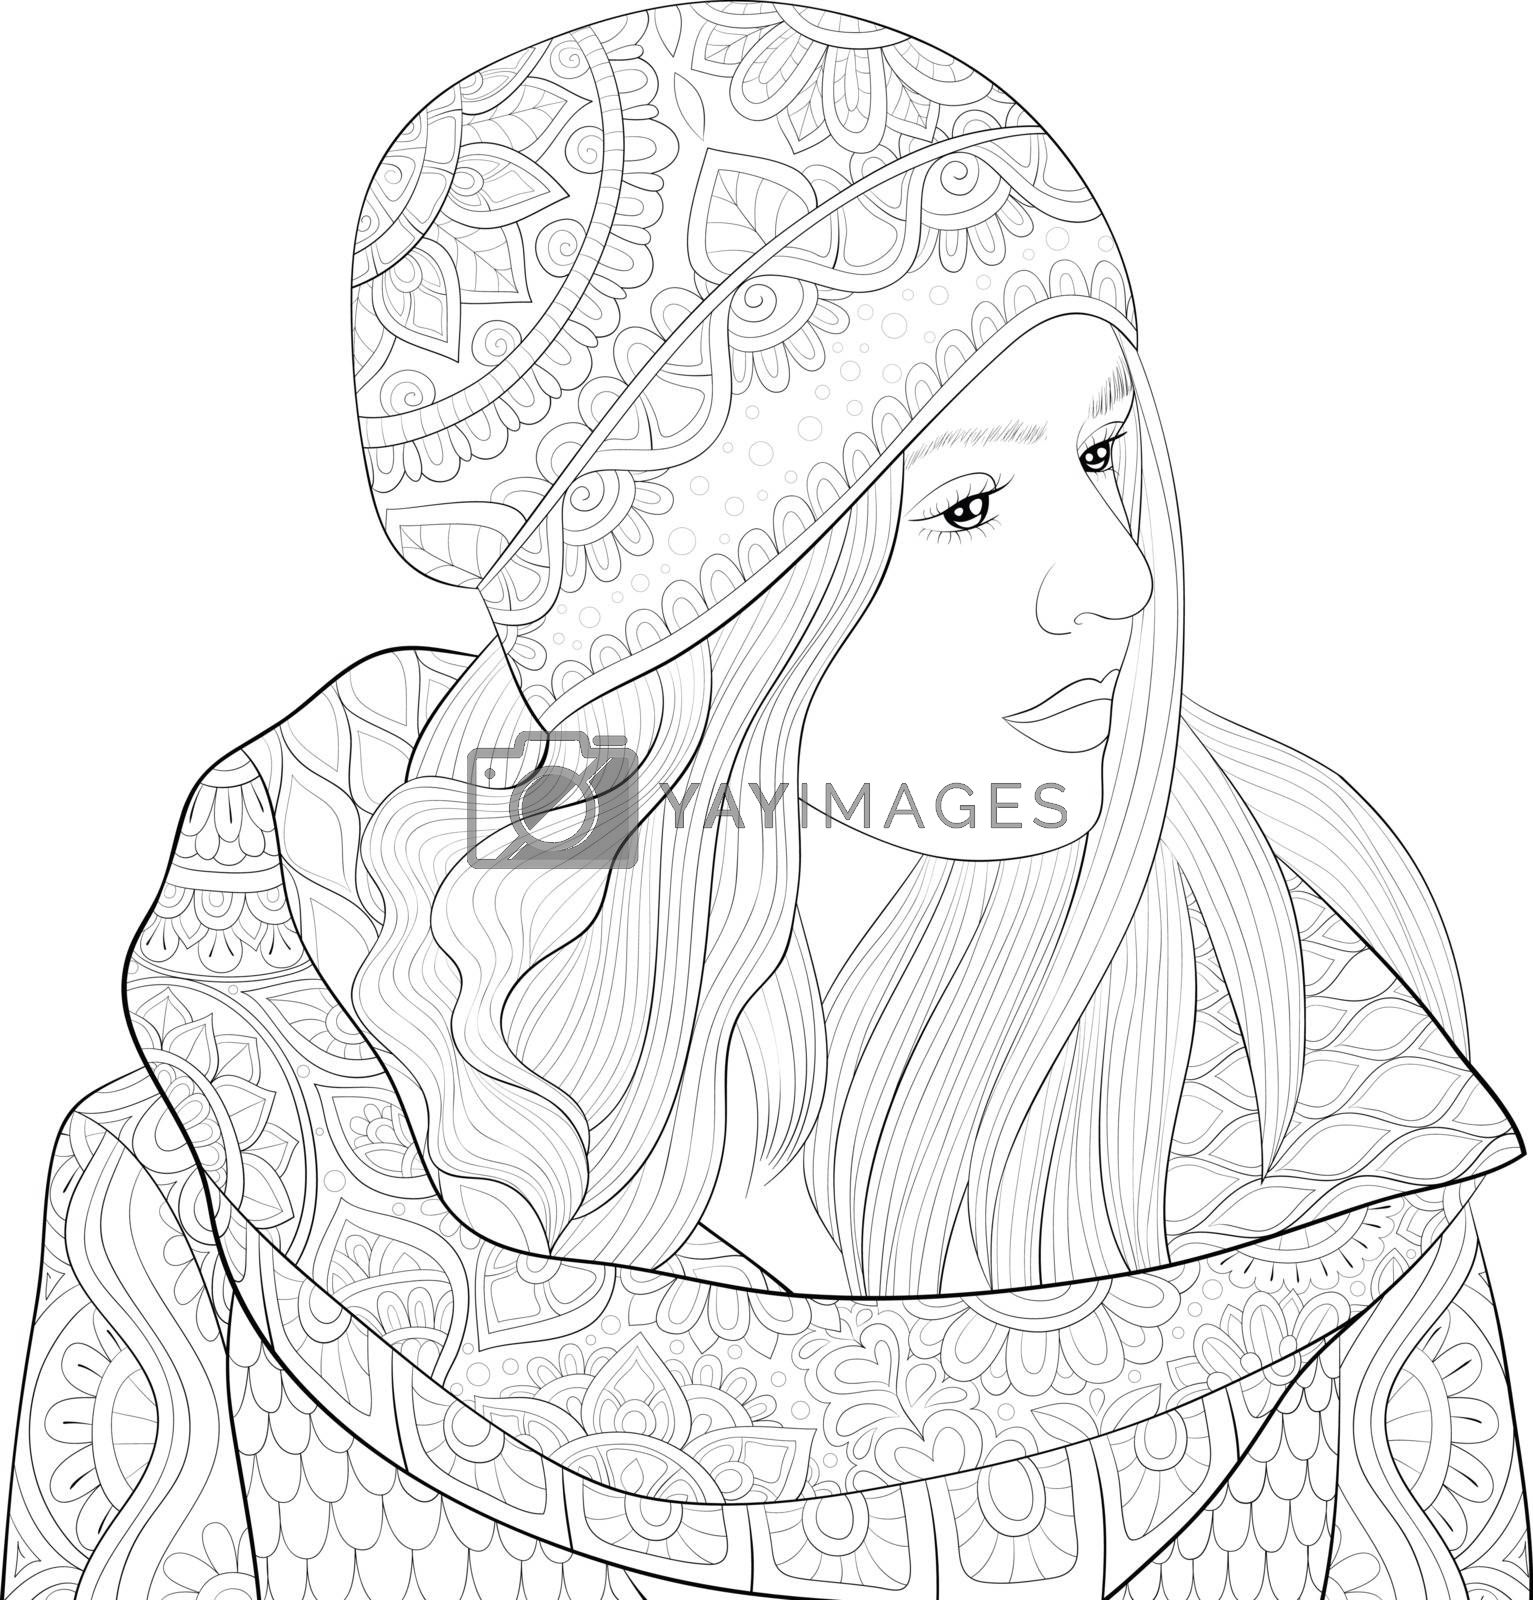 A cute girl wearing a cap with ornaments image for relaxing activity.Coloring book,page for adults.Zen art style illustration for print.Poster design.